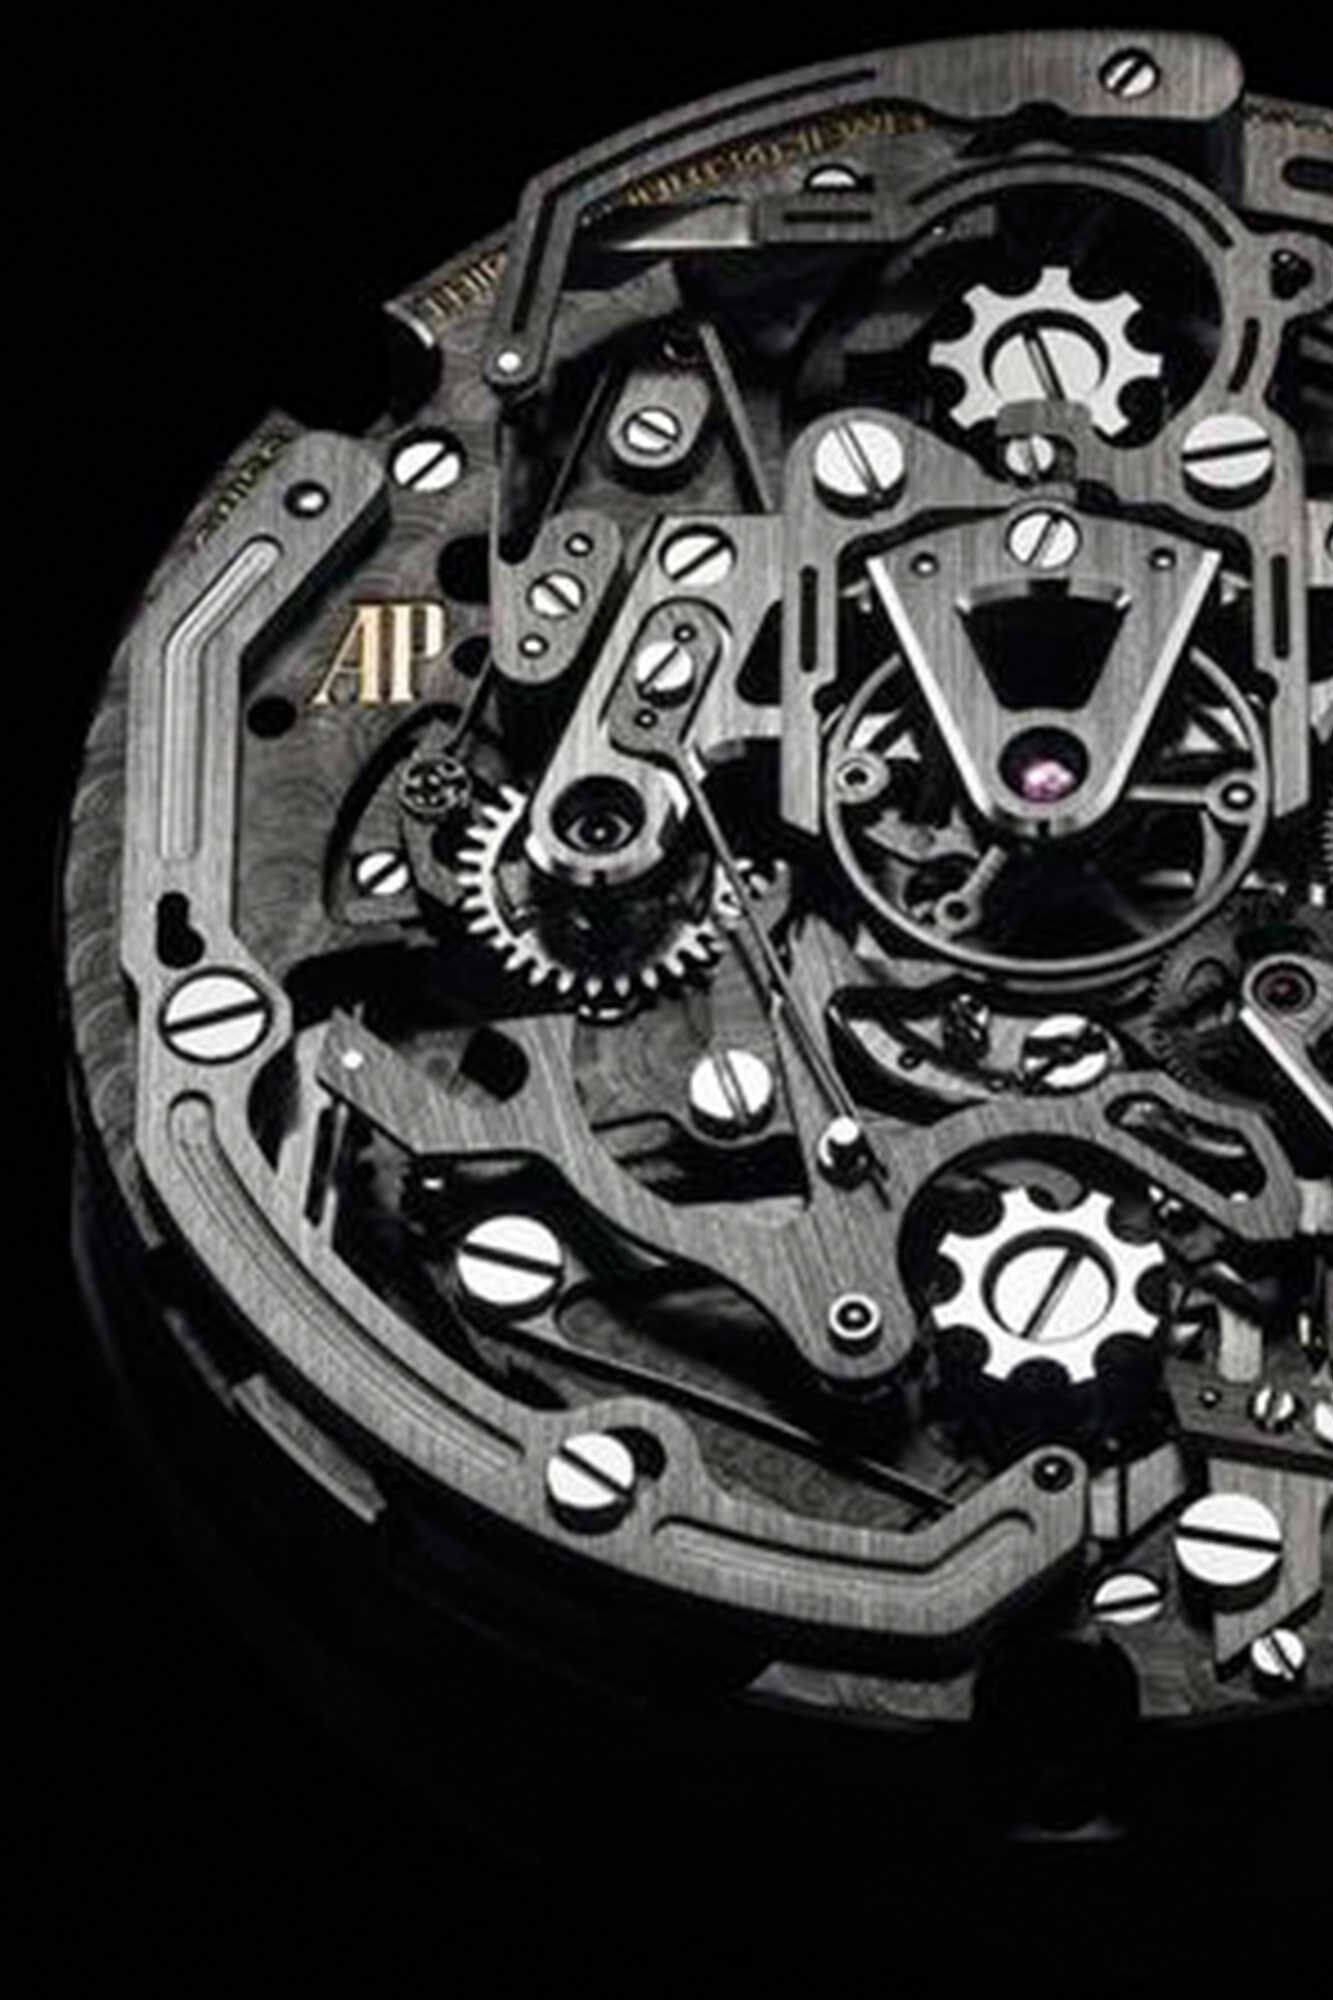 The watch book - comp TE1087, MULTIPLE